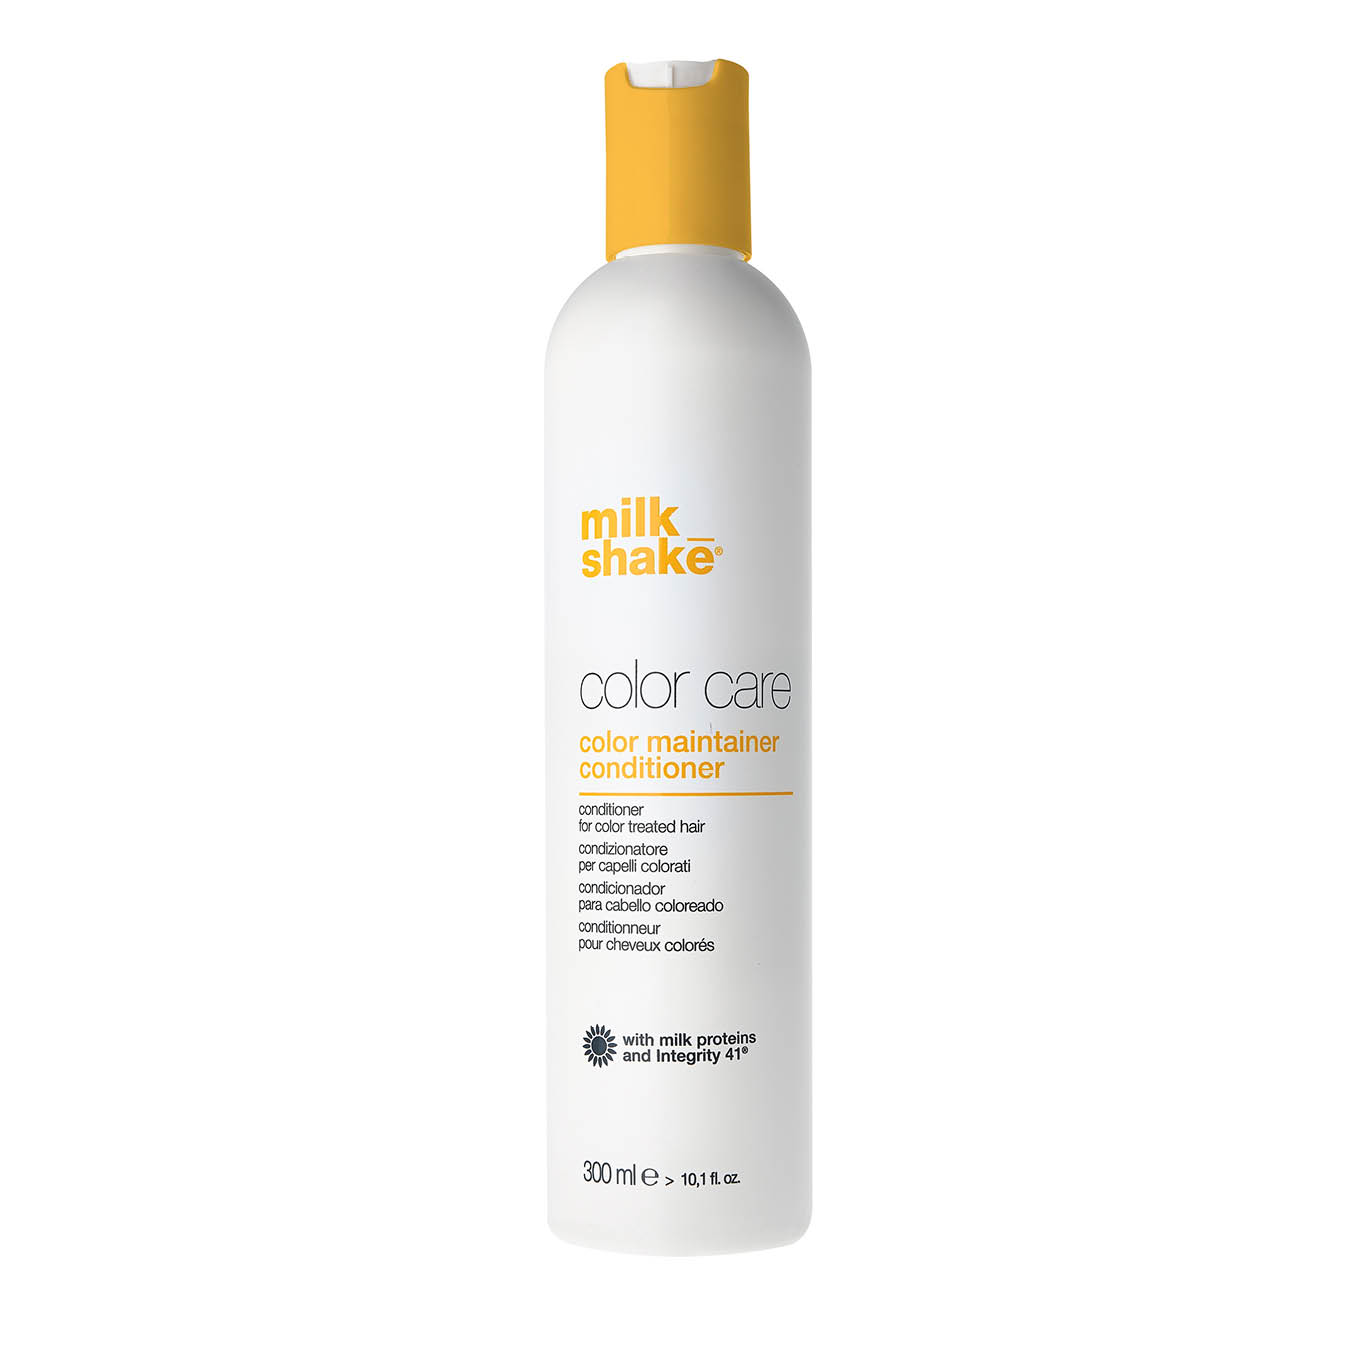 milk_shake z.one color maintainer conditioner